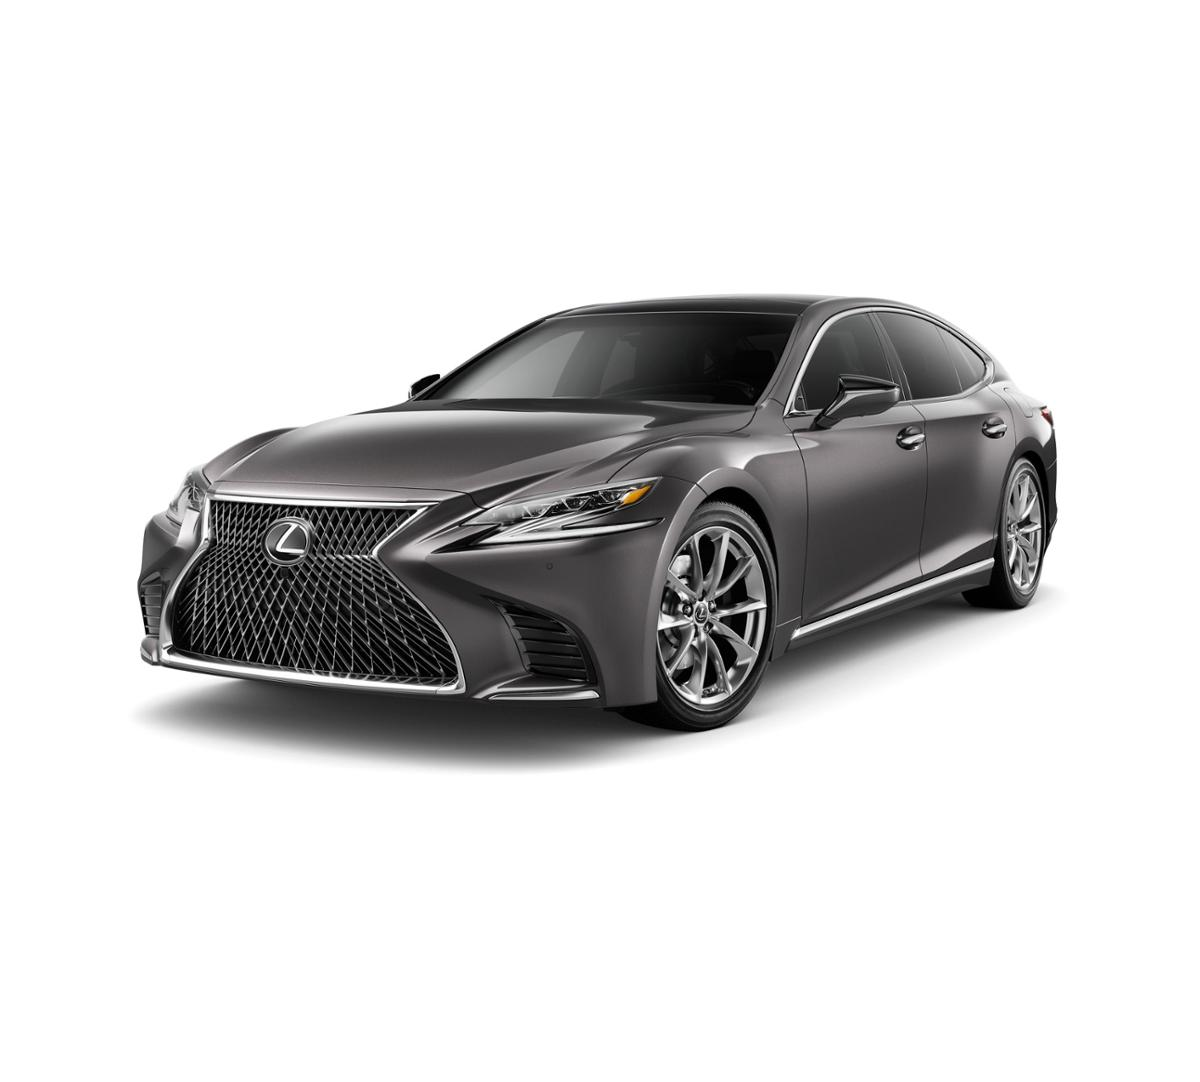 2018 Lexus LS 500 Vehicle Photo in Santa Monica, CA 90404